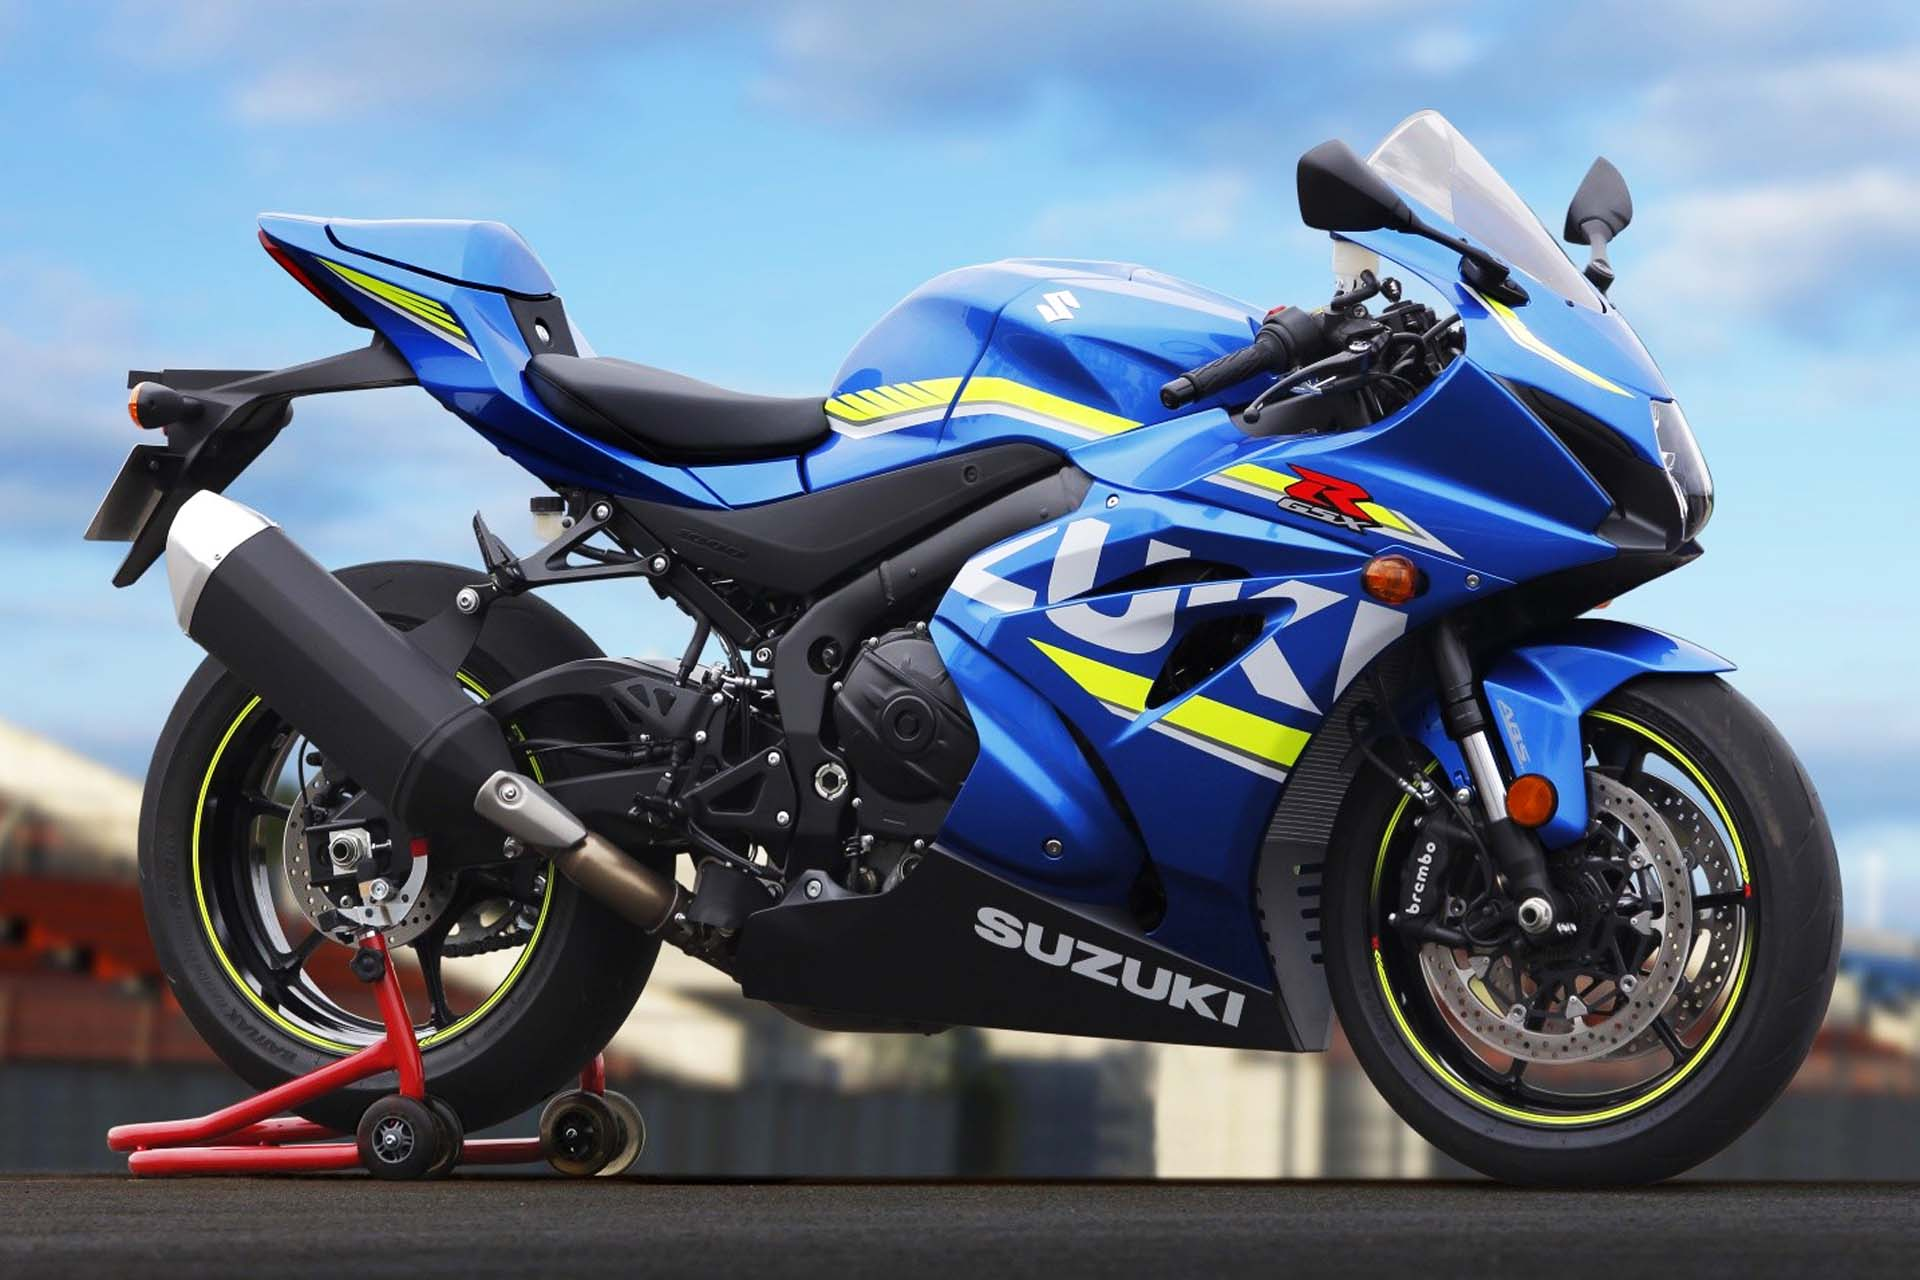 Suzuki's iconic GSX-R1000 gets a big upgrade late in 2016 for the 2017 model year. The newest iteration will have a variable valve timing-equipped 999cc engine good for around 200 hp, with a ten-stage traction control system. However, it won't have an inertia measurement unit <em>a la</em> the Yamaha YZF-R1 or the Ducati 1299 Panigale, which means a less electronics-heavy riding experience. Showa Balance Free Forks with a remote damping valve and similarly setup rear shock should improve ride comfort at low speed and grip at high speed.